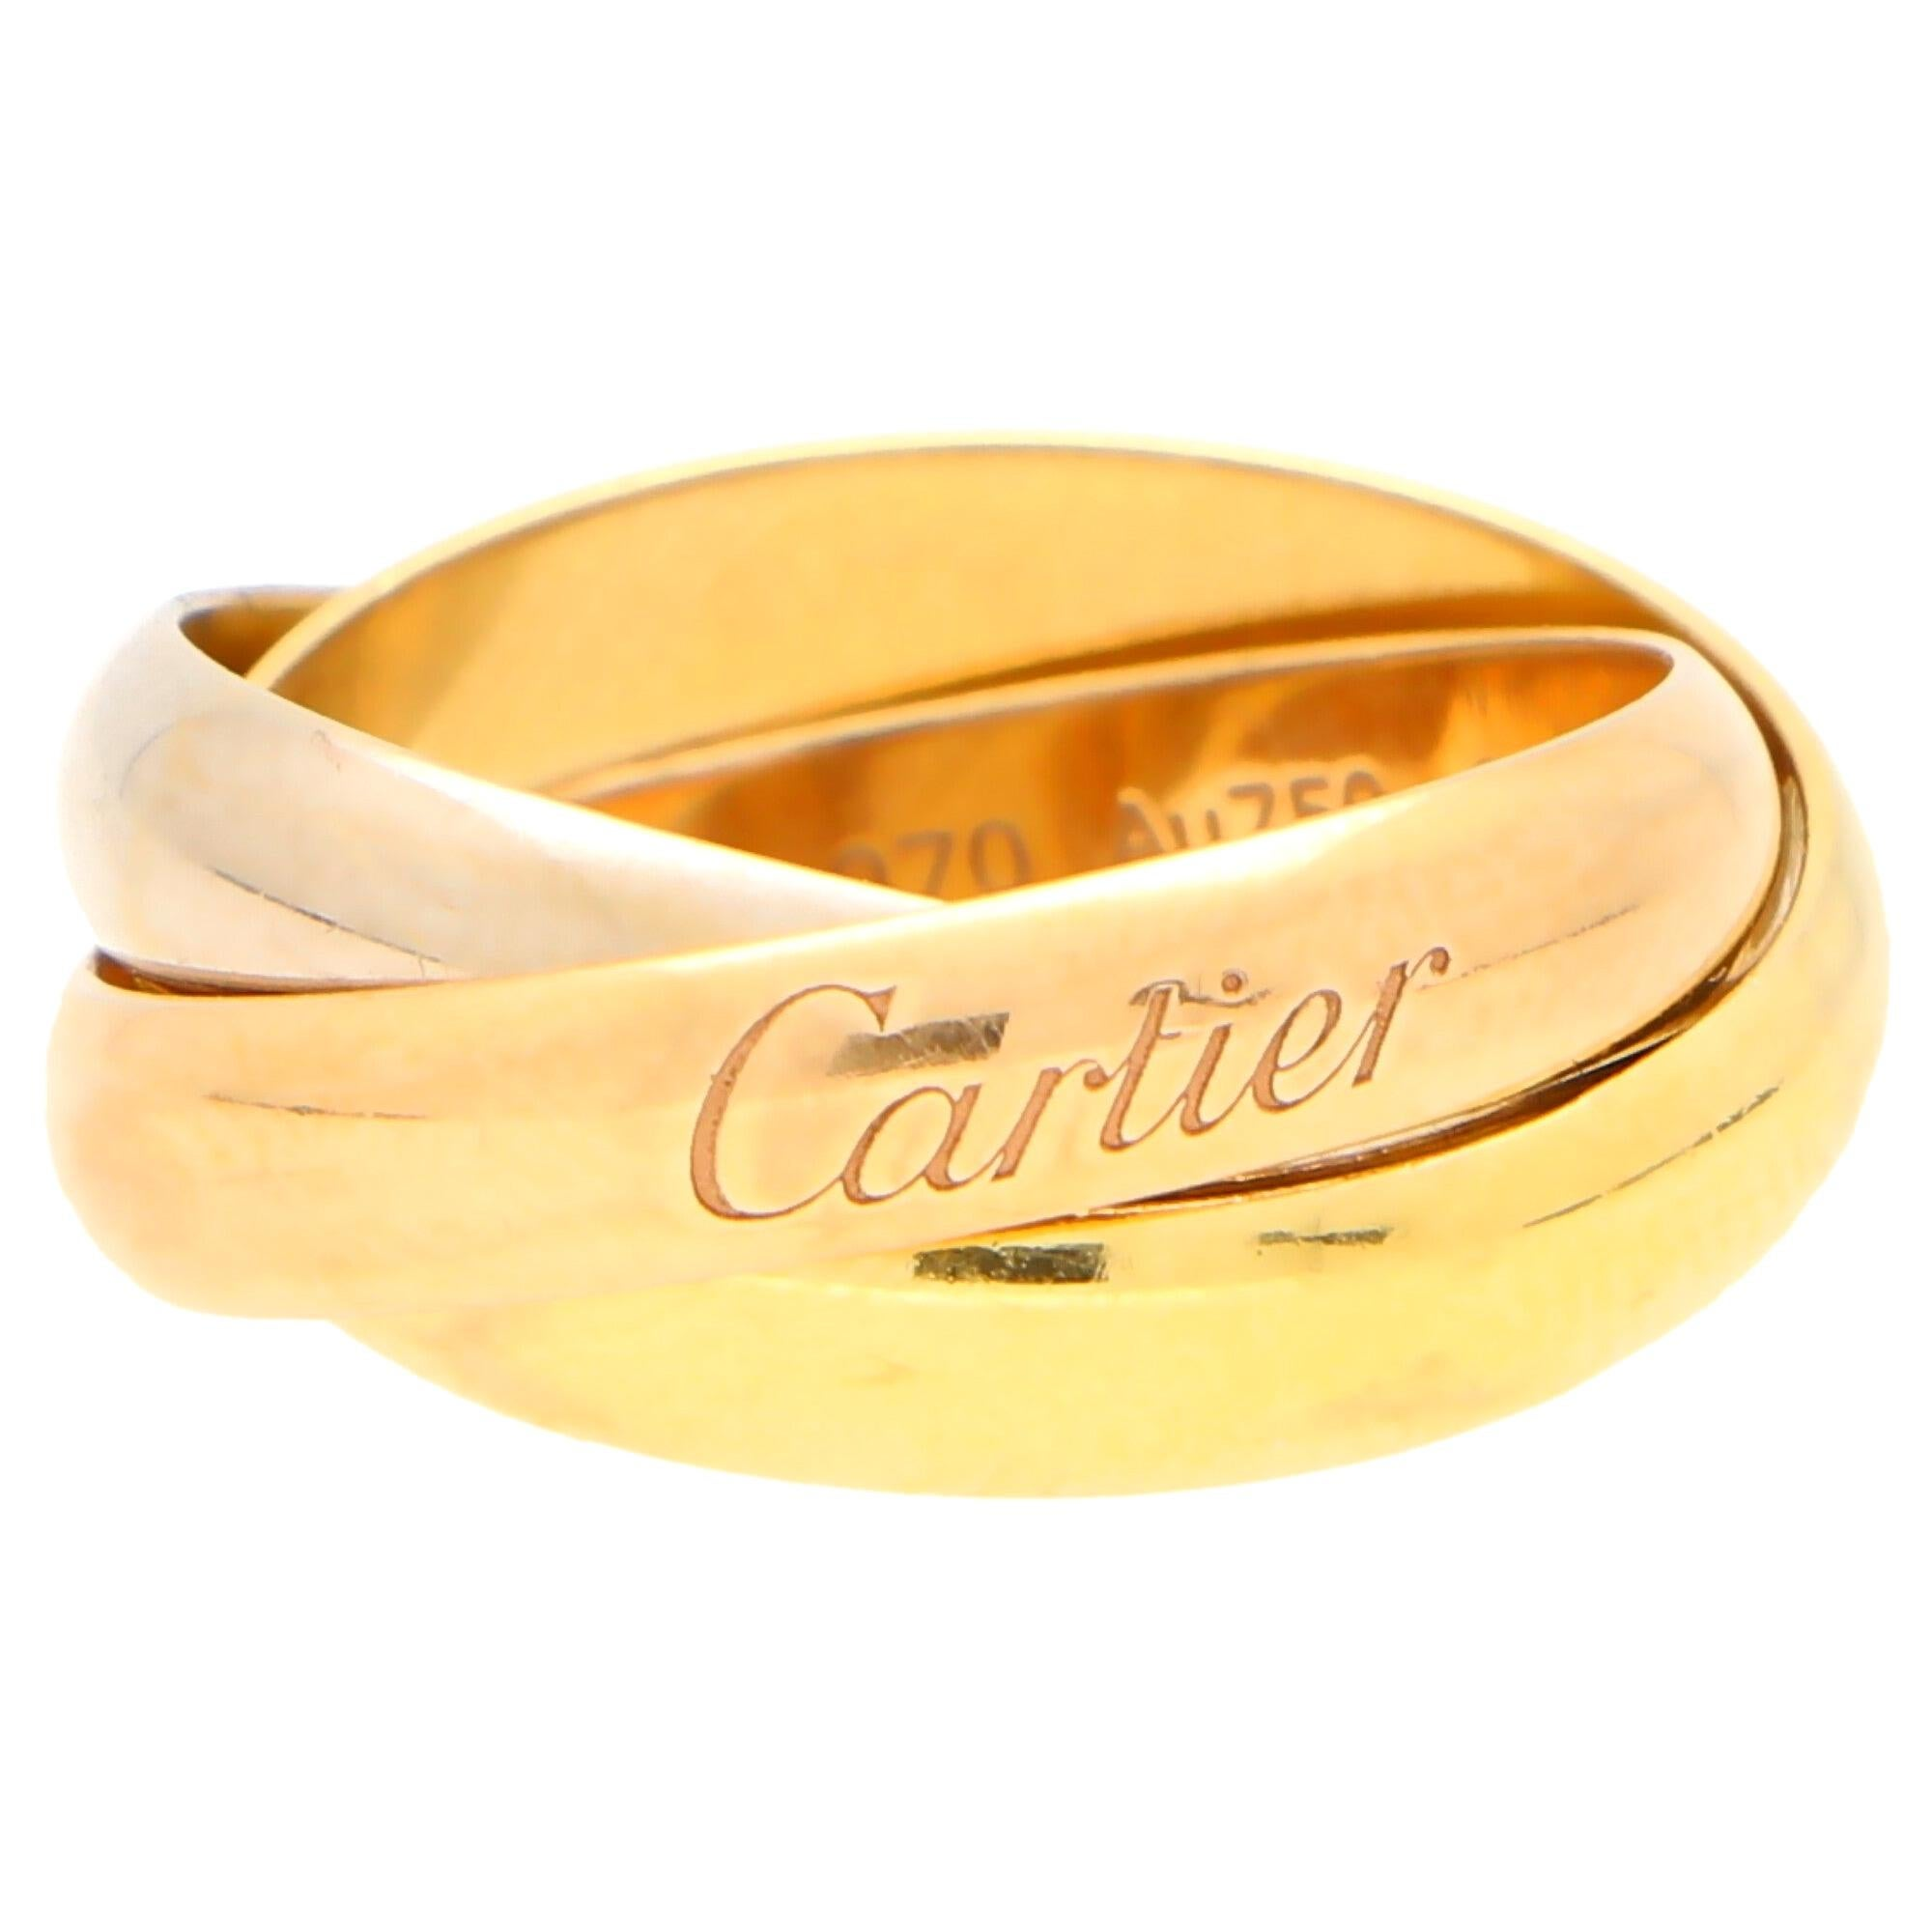 Cartier Trinity Band Ring Set in 18 Karat Yellow, Rose and White Gold